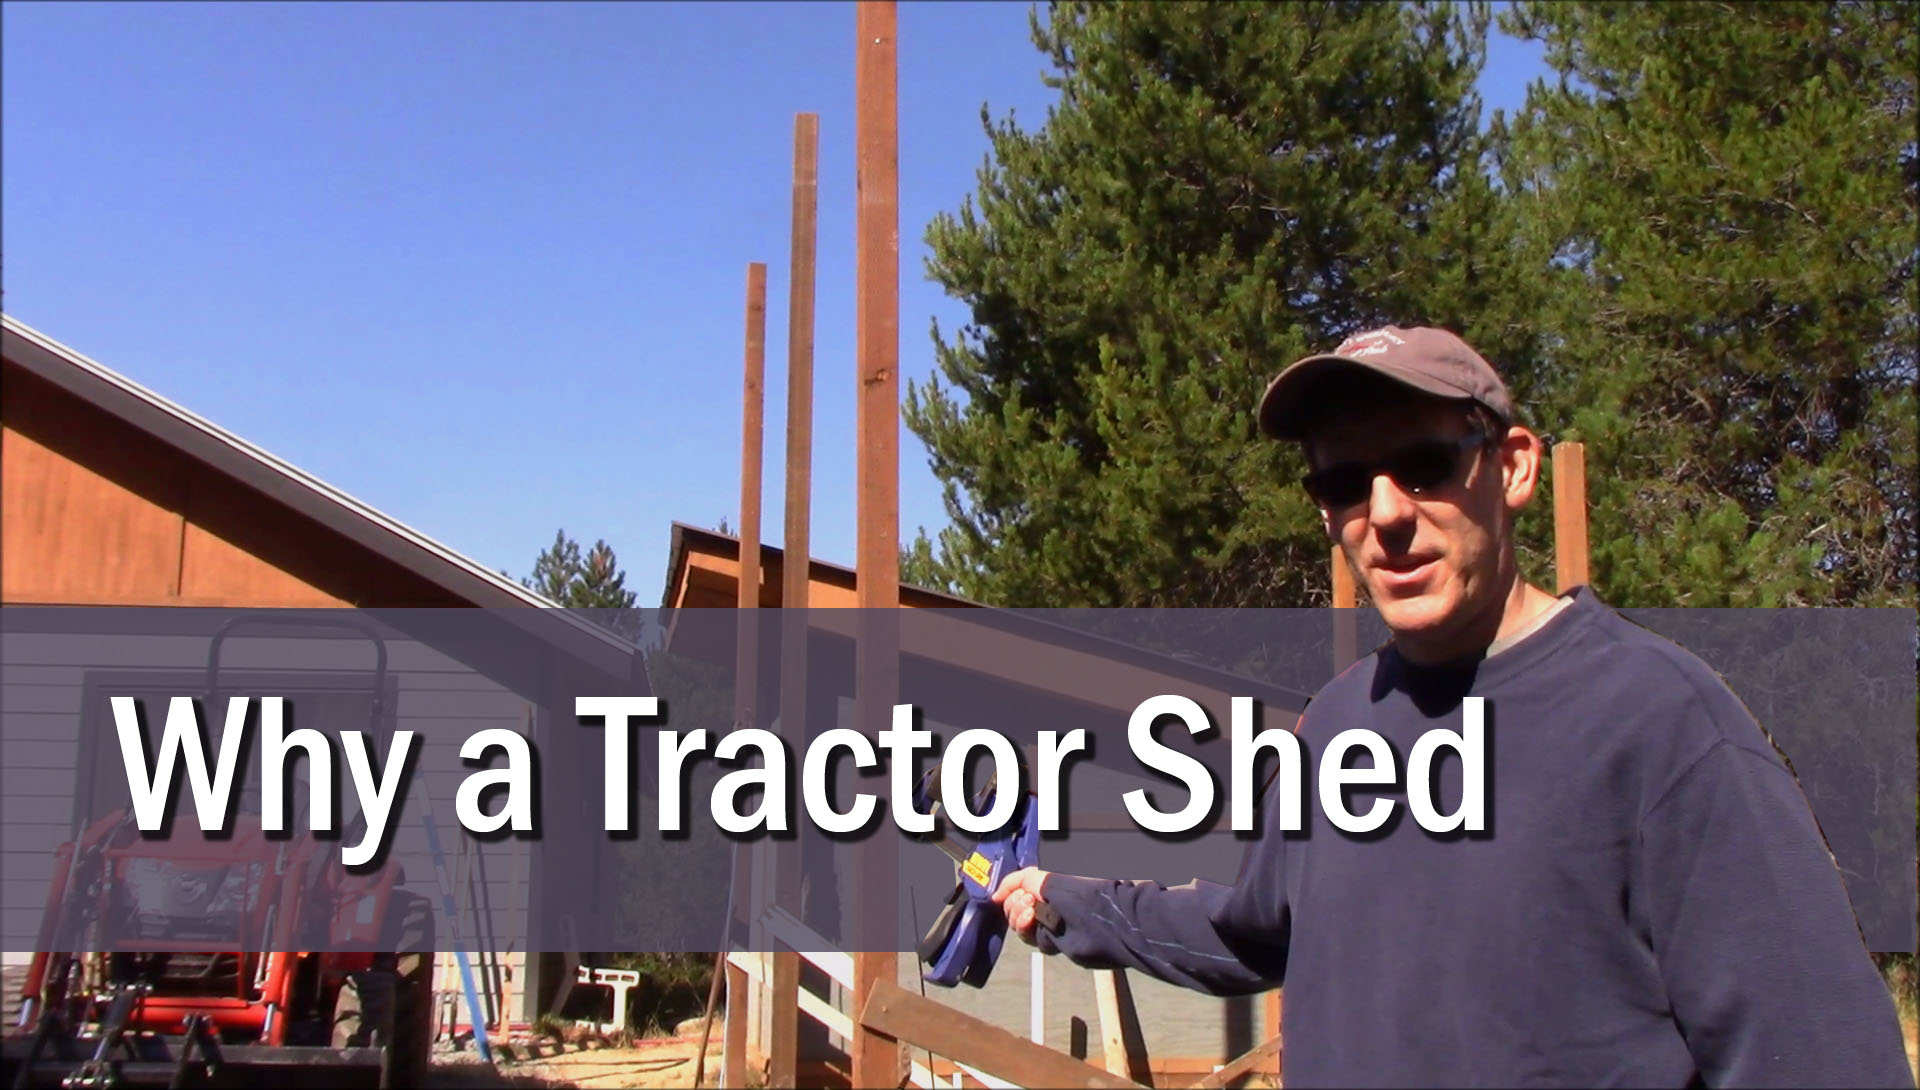 Why a Tractor Shed?